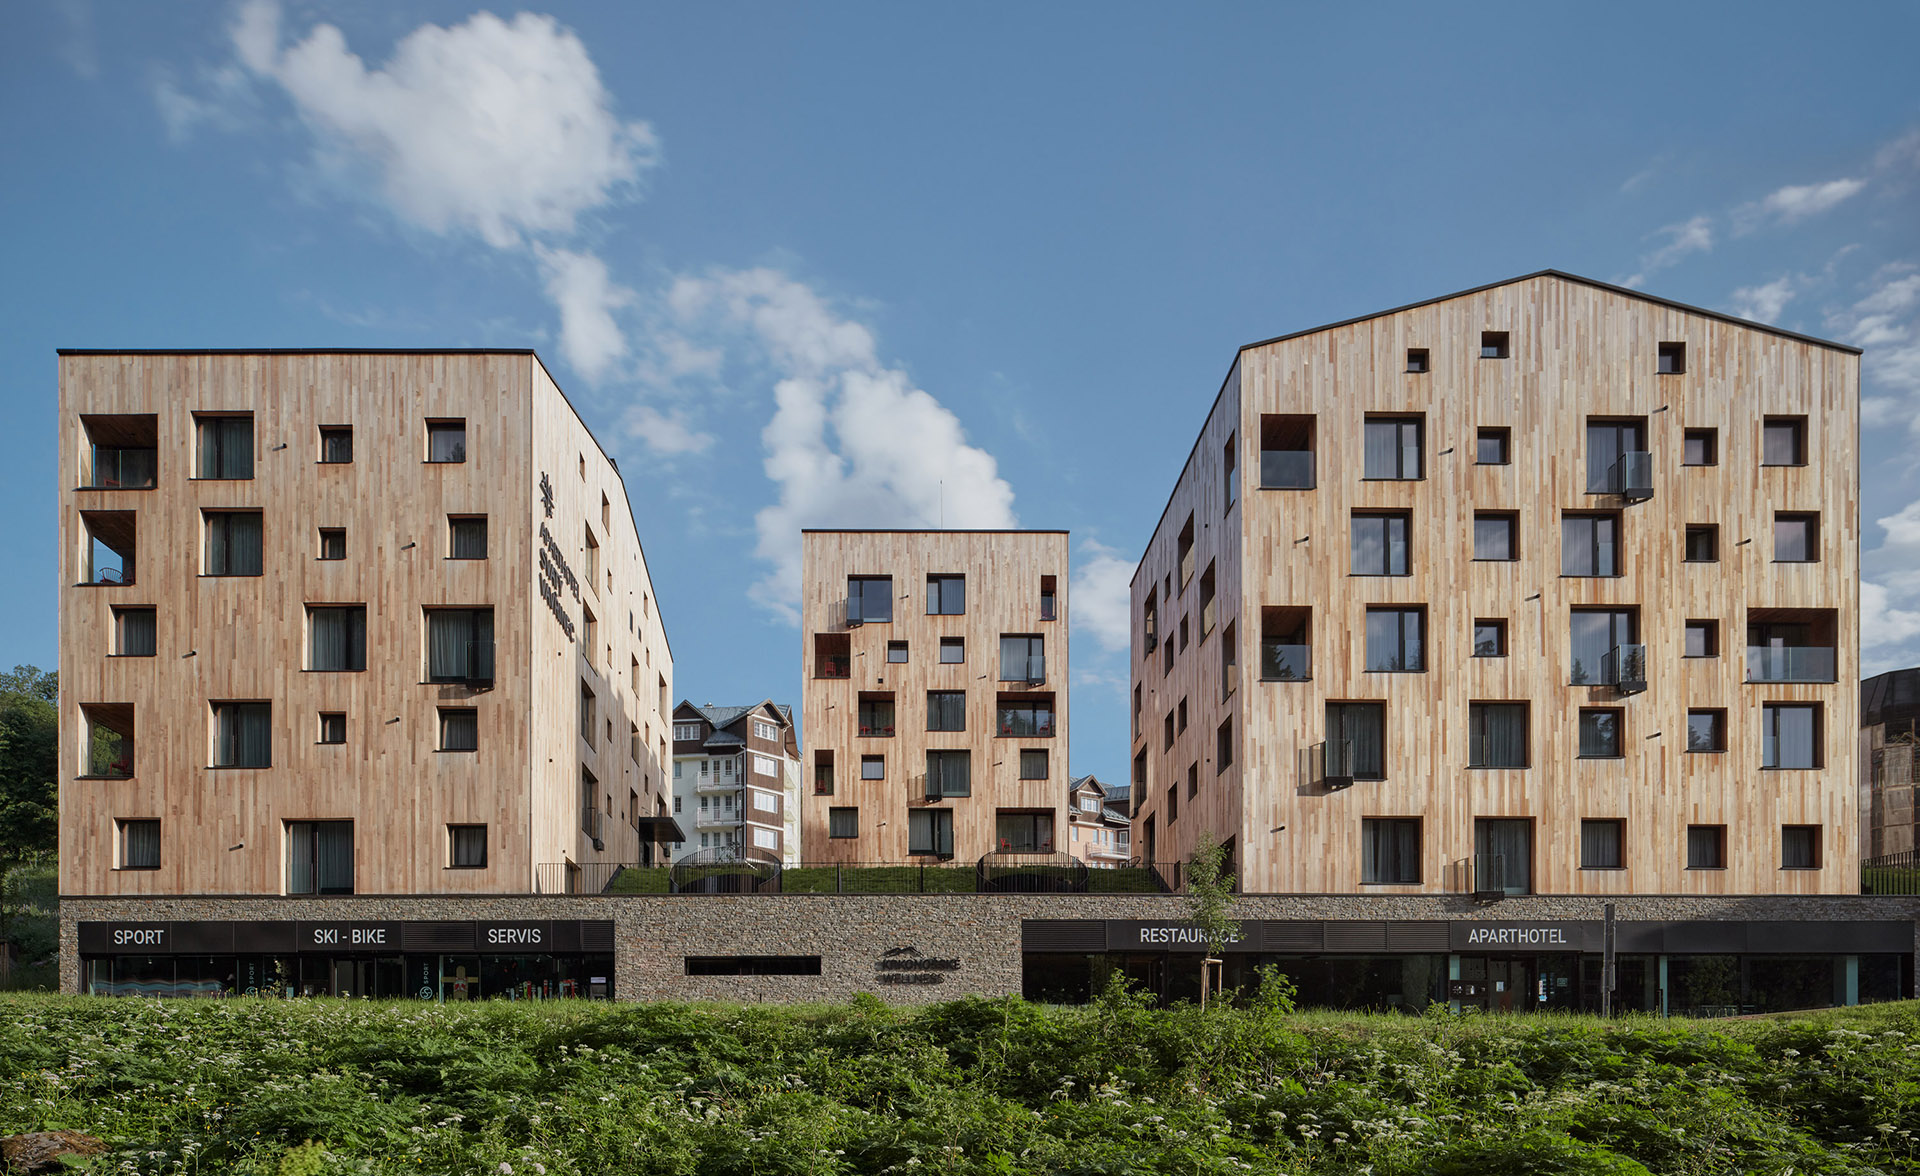 Residential complex covered in wood